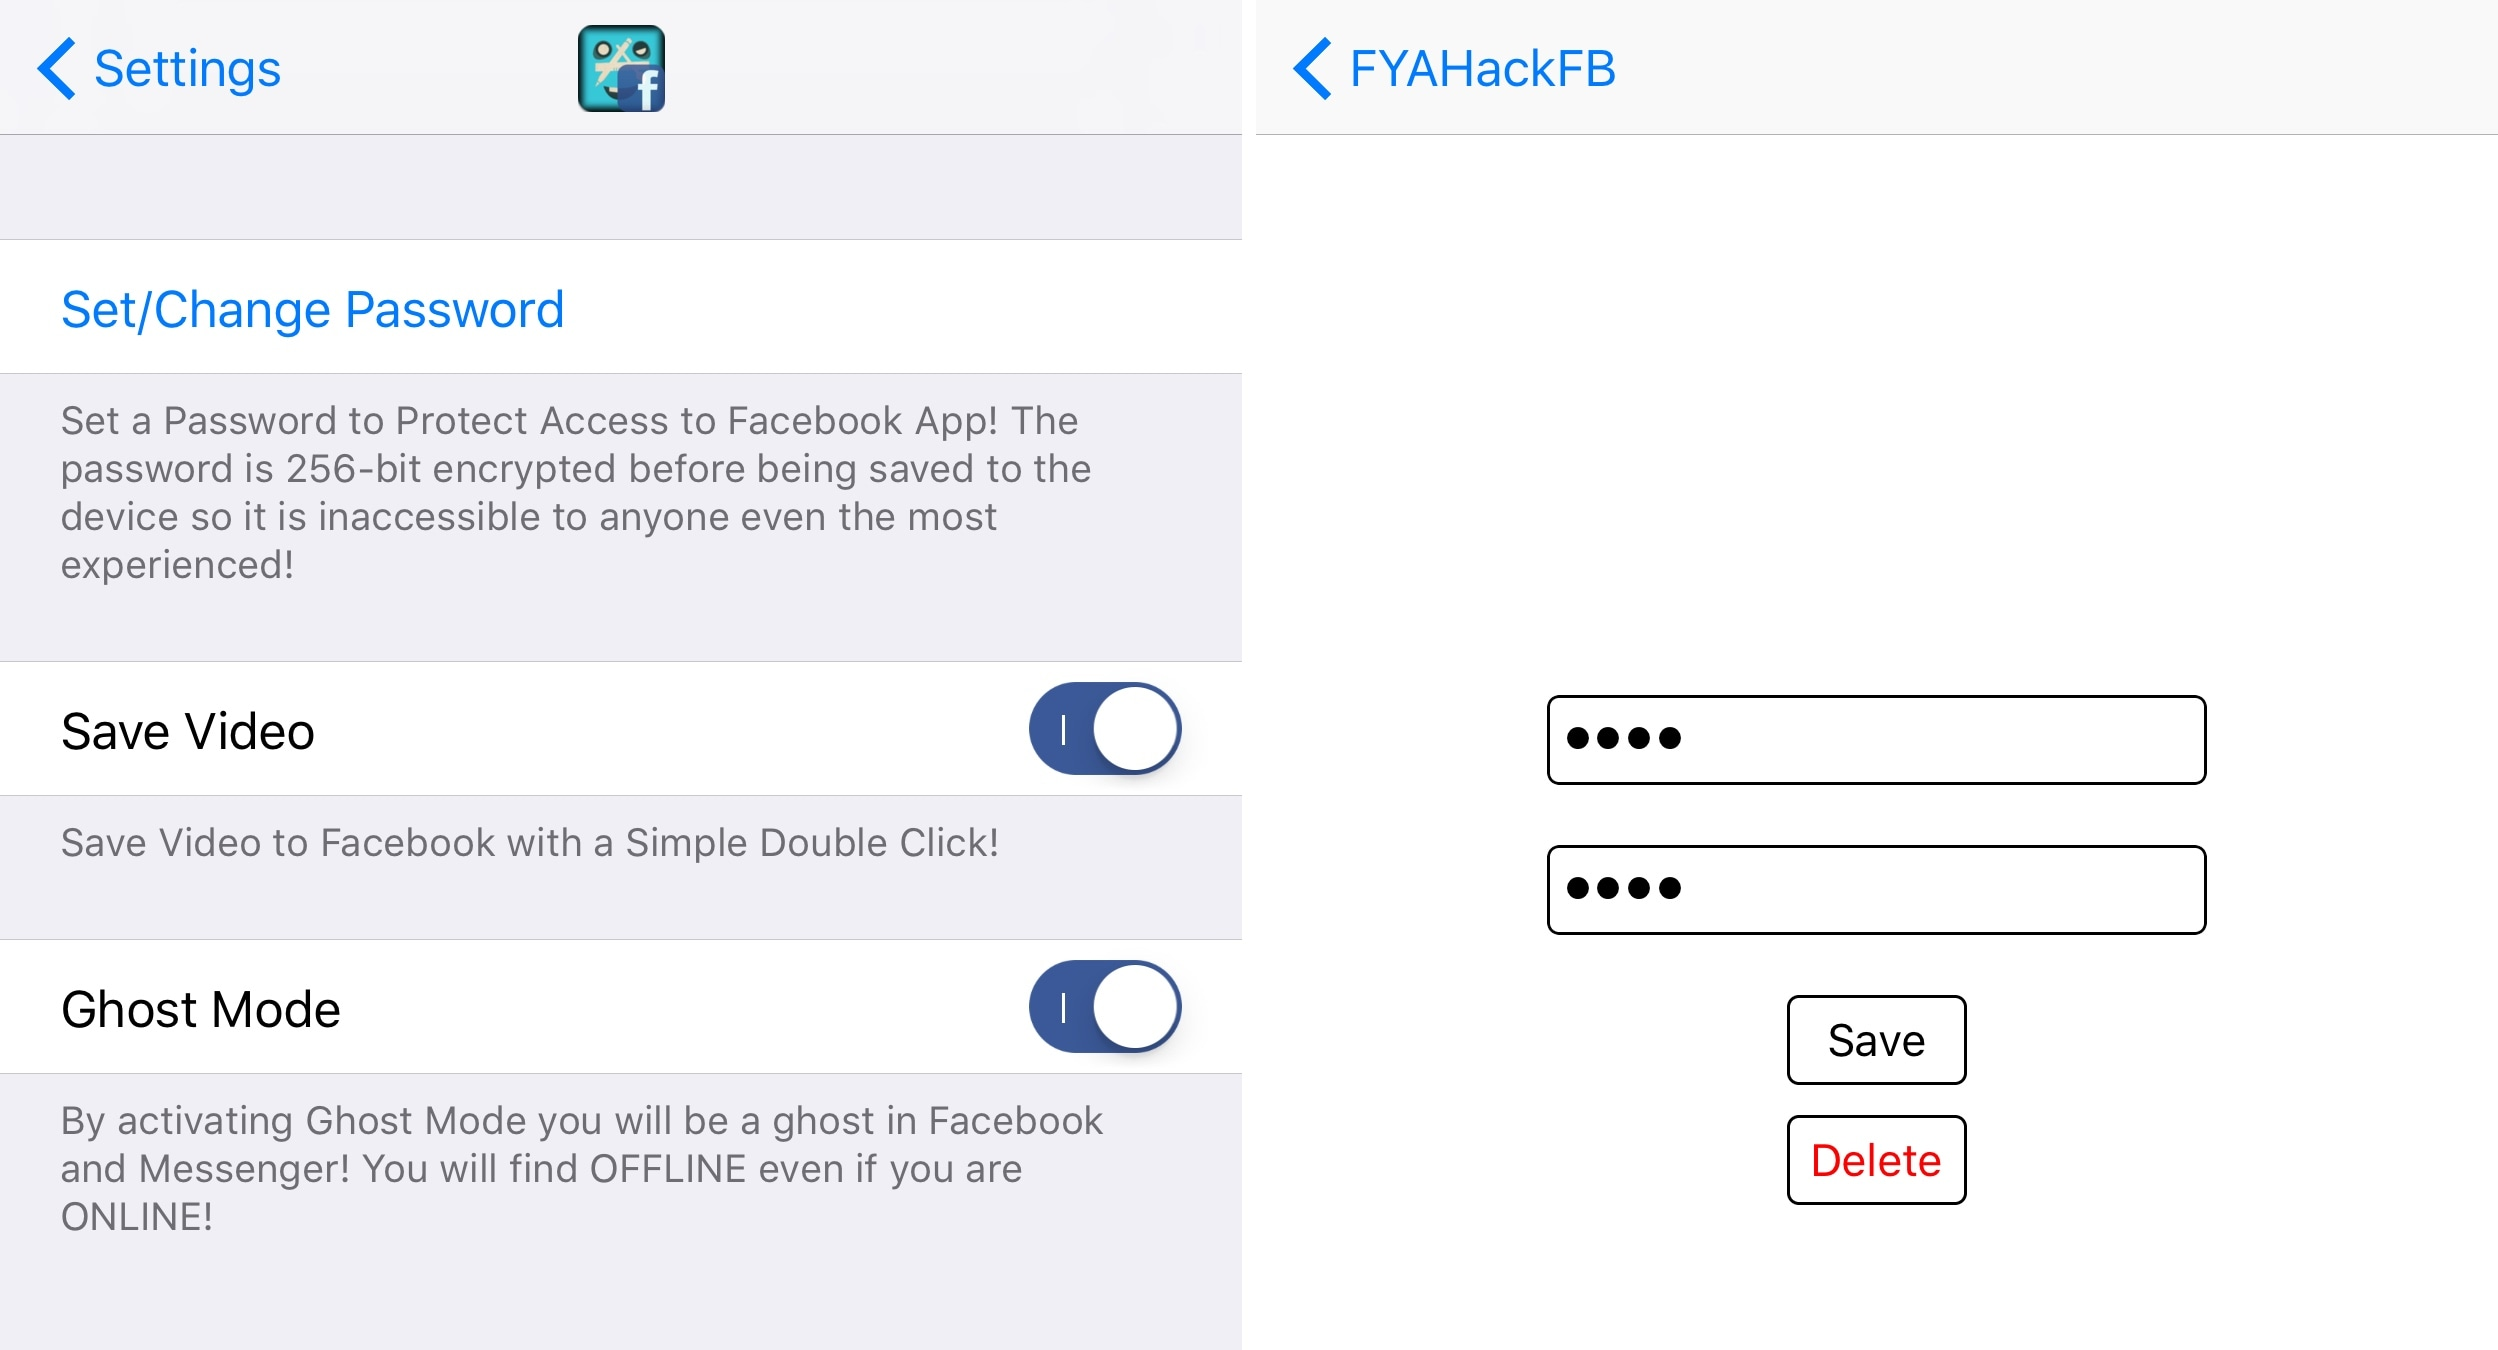 This tweak adds new privacy and convenience features to the Facebook app